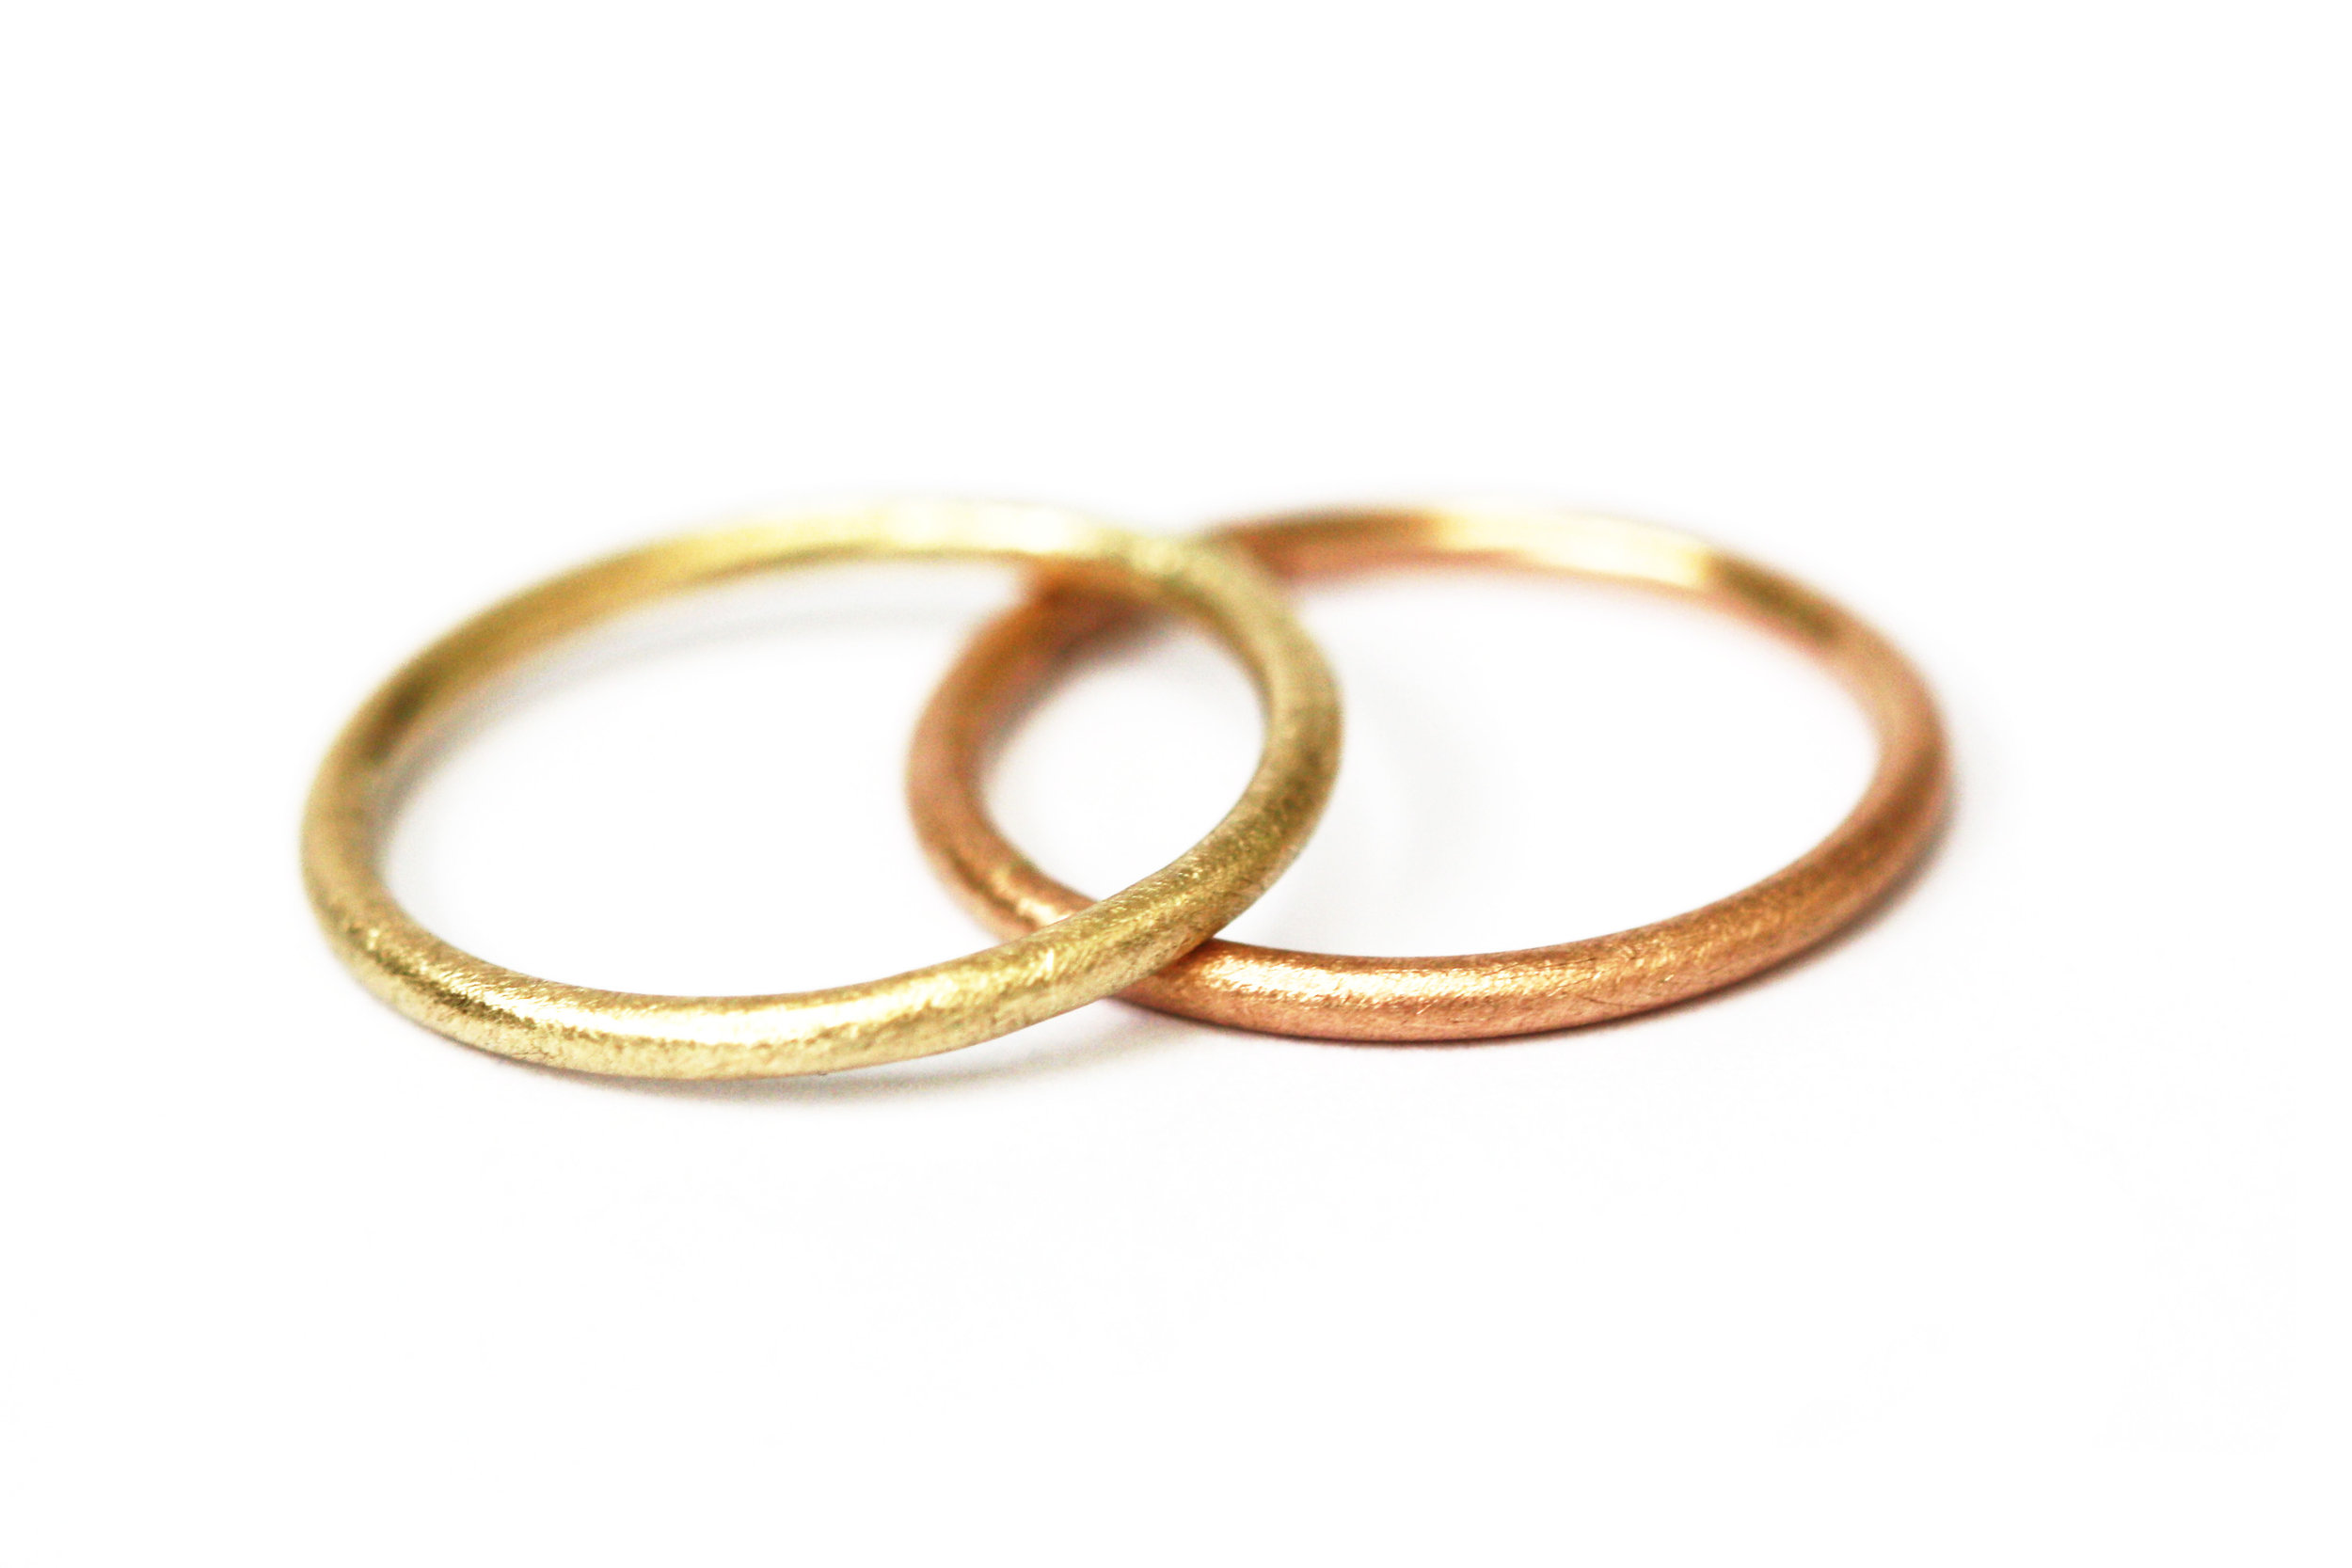 Round and Around  Simple, understated and classic, the round profile bands made of 9ct yellow gold and 9ct rose gold show the tones of warmth avaialble.